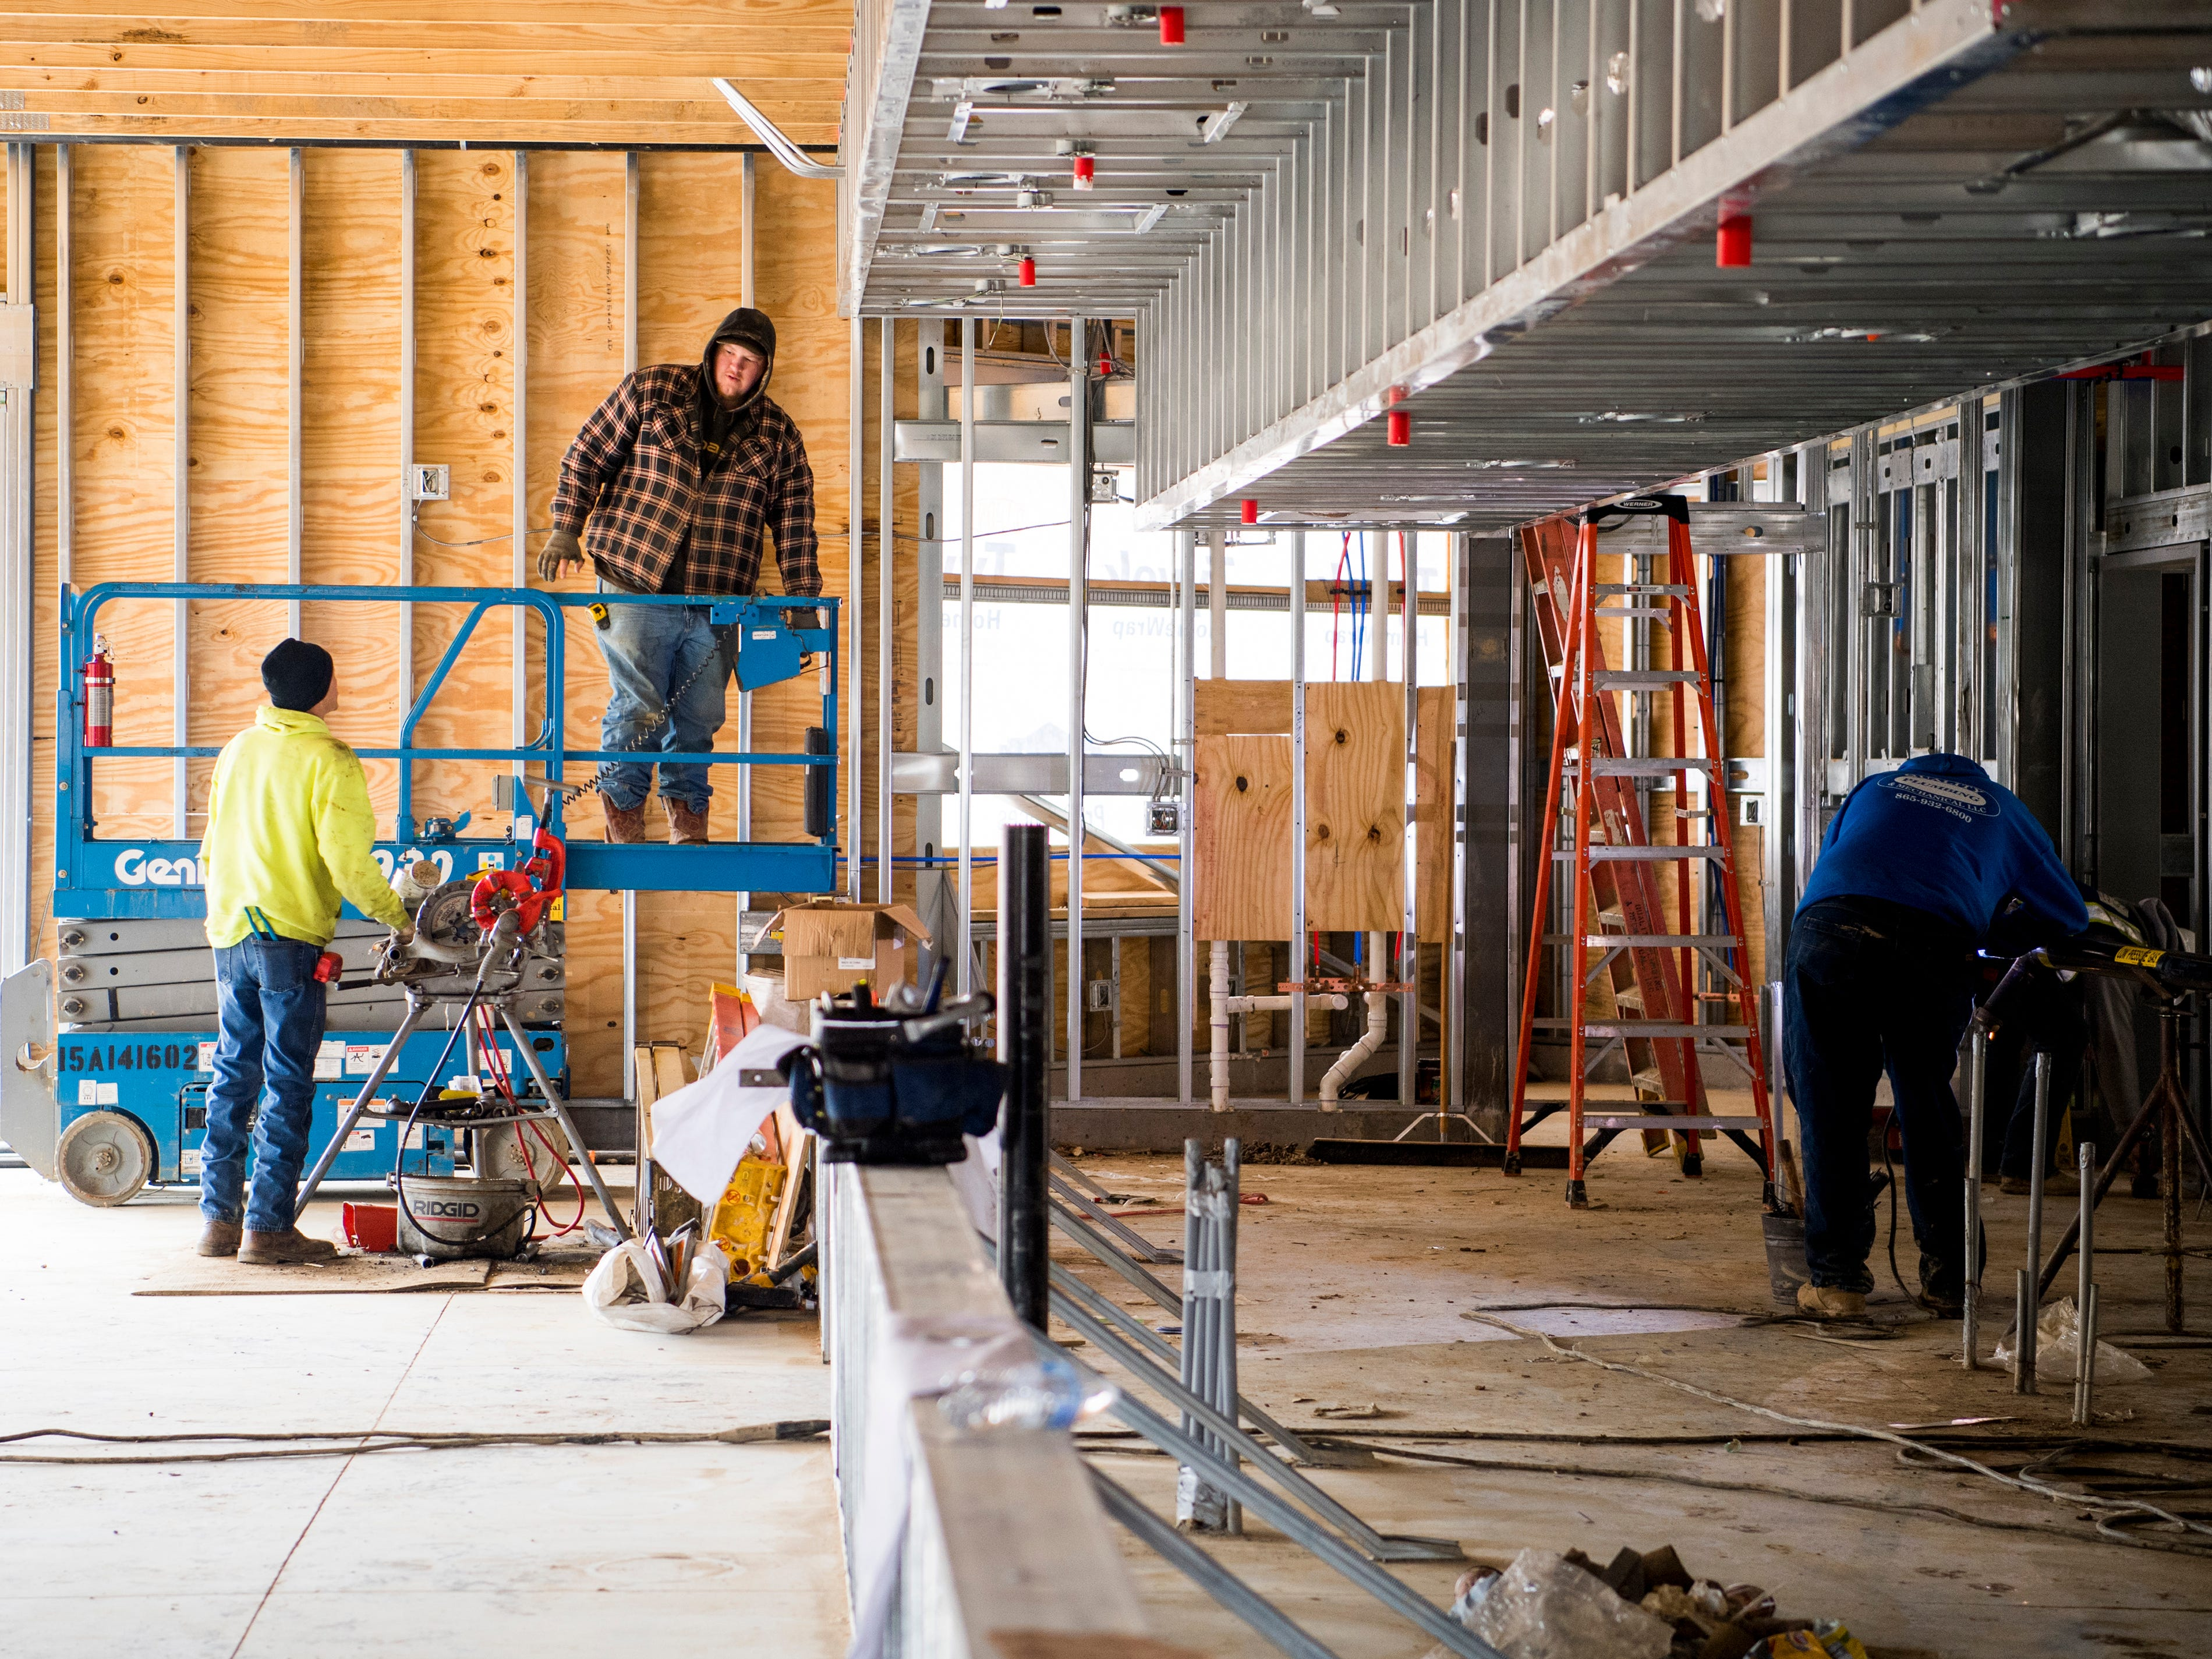 Construction workers continue work in a dining area in Dollywood's new Wildwood Grove area of the park on Tuesday, February 19, 2019.